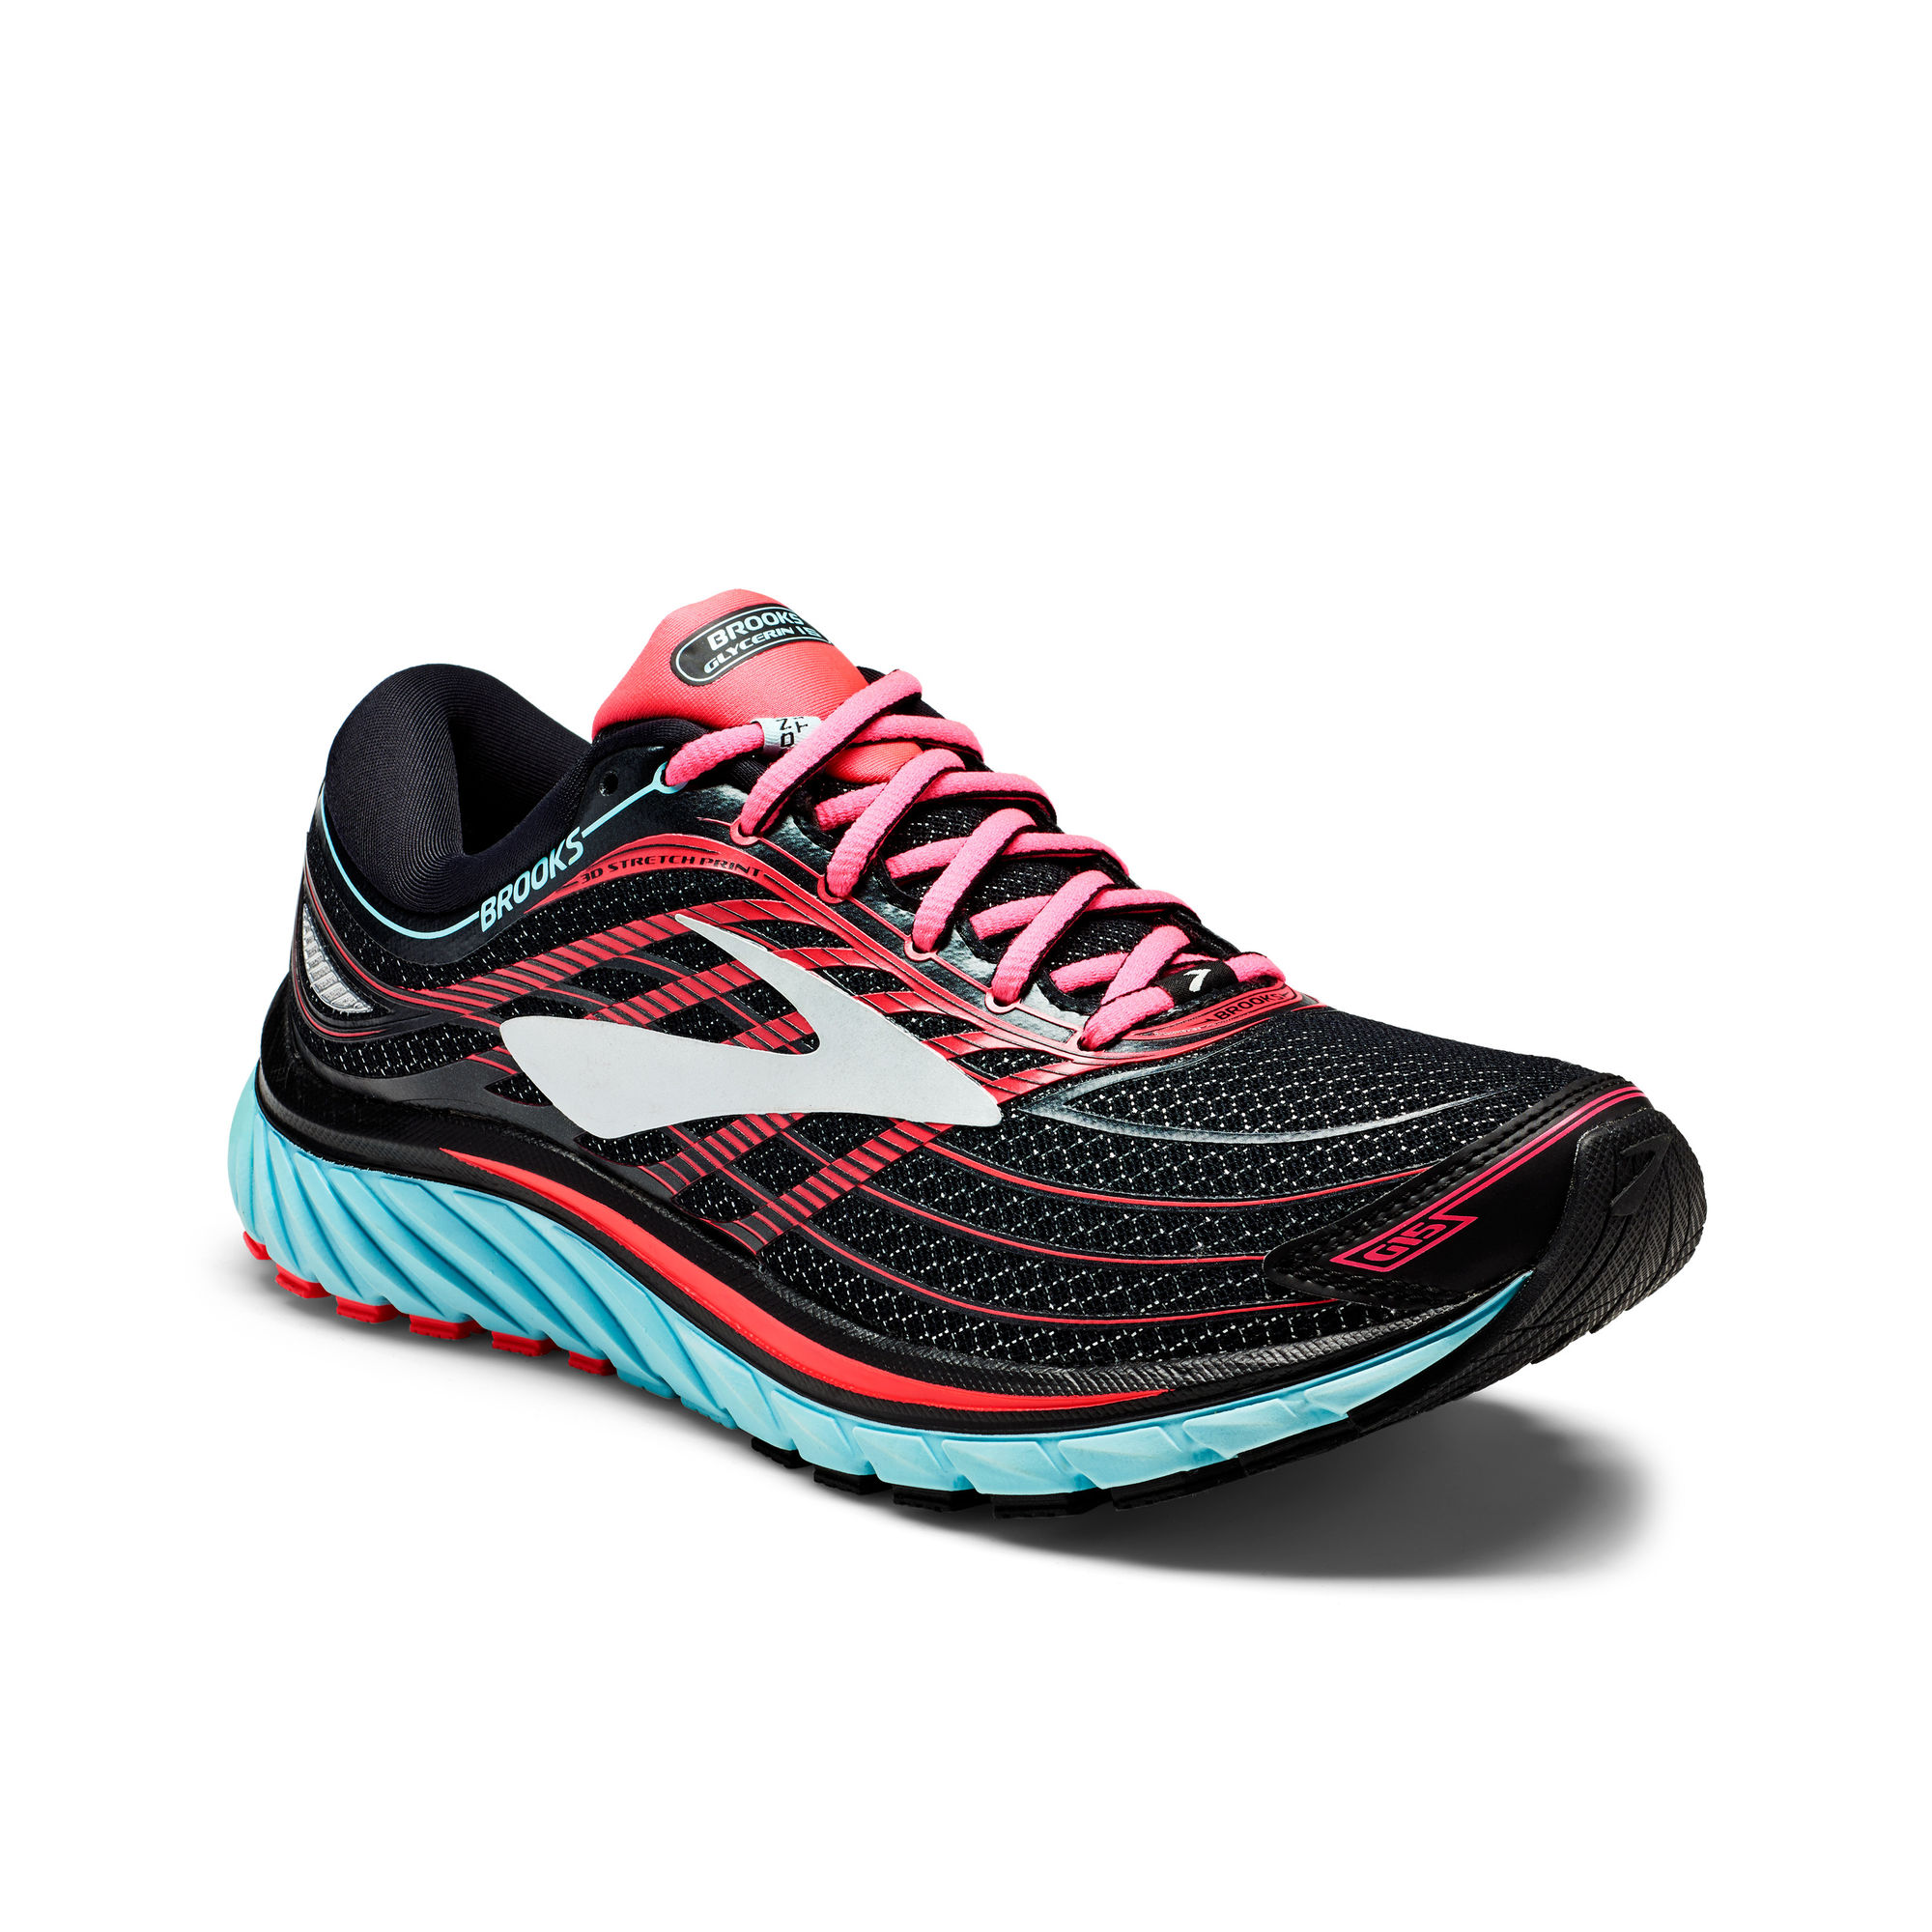 Brooks Lady Glycerin 15 in Schwarz Rosa Blau